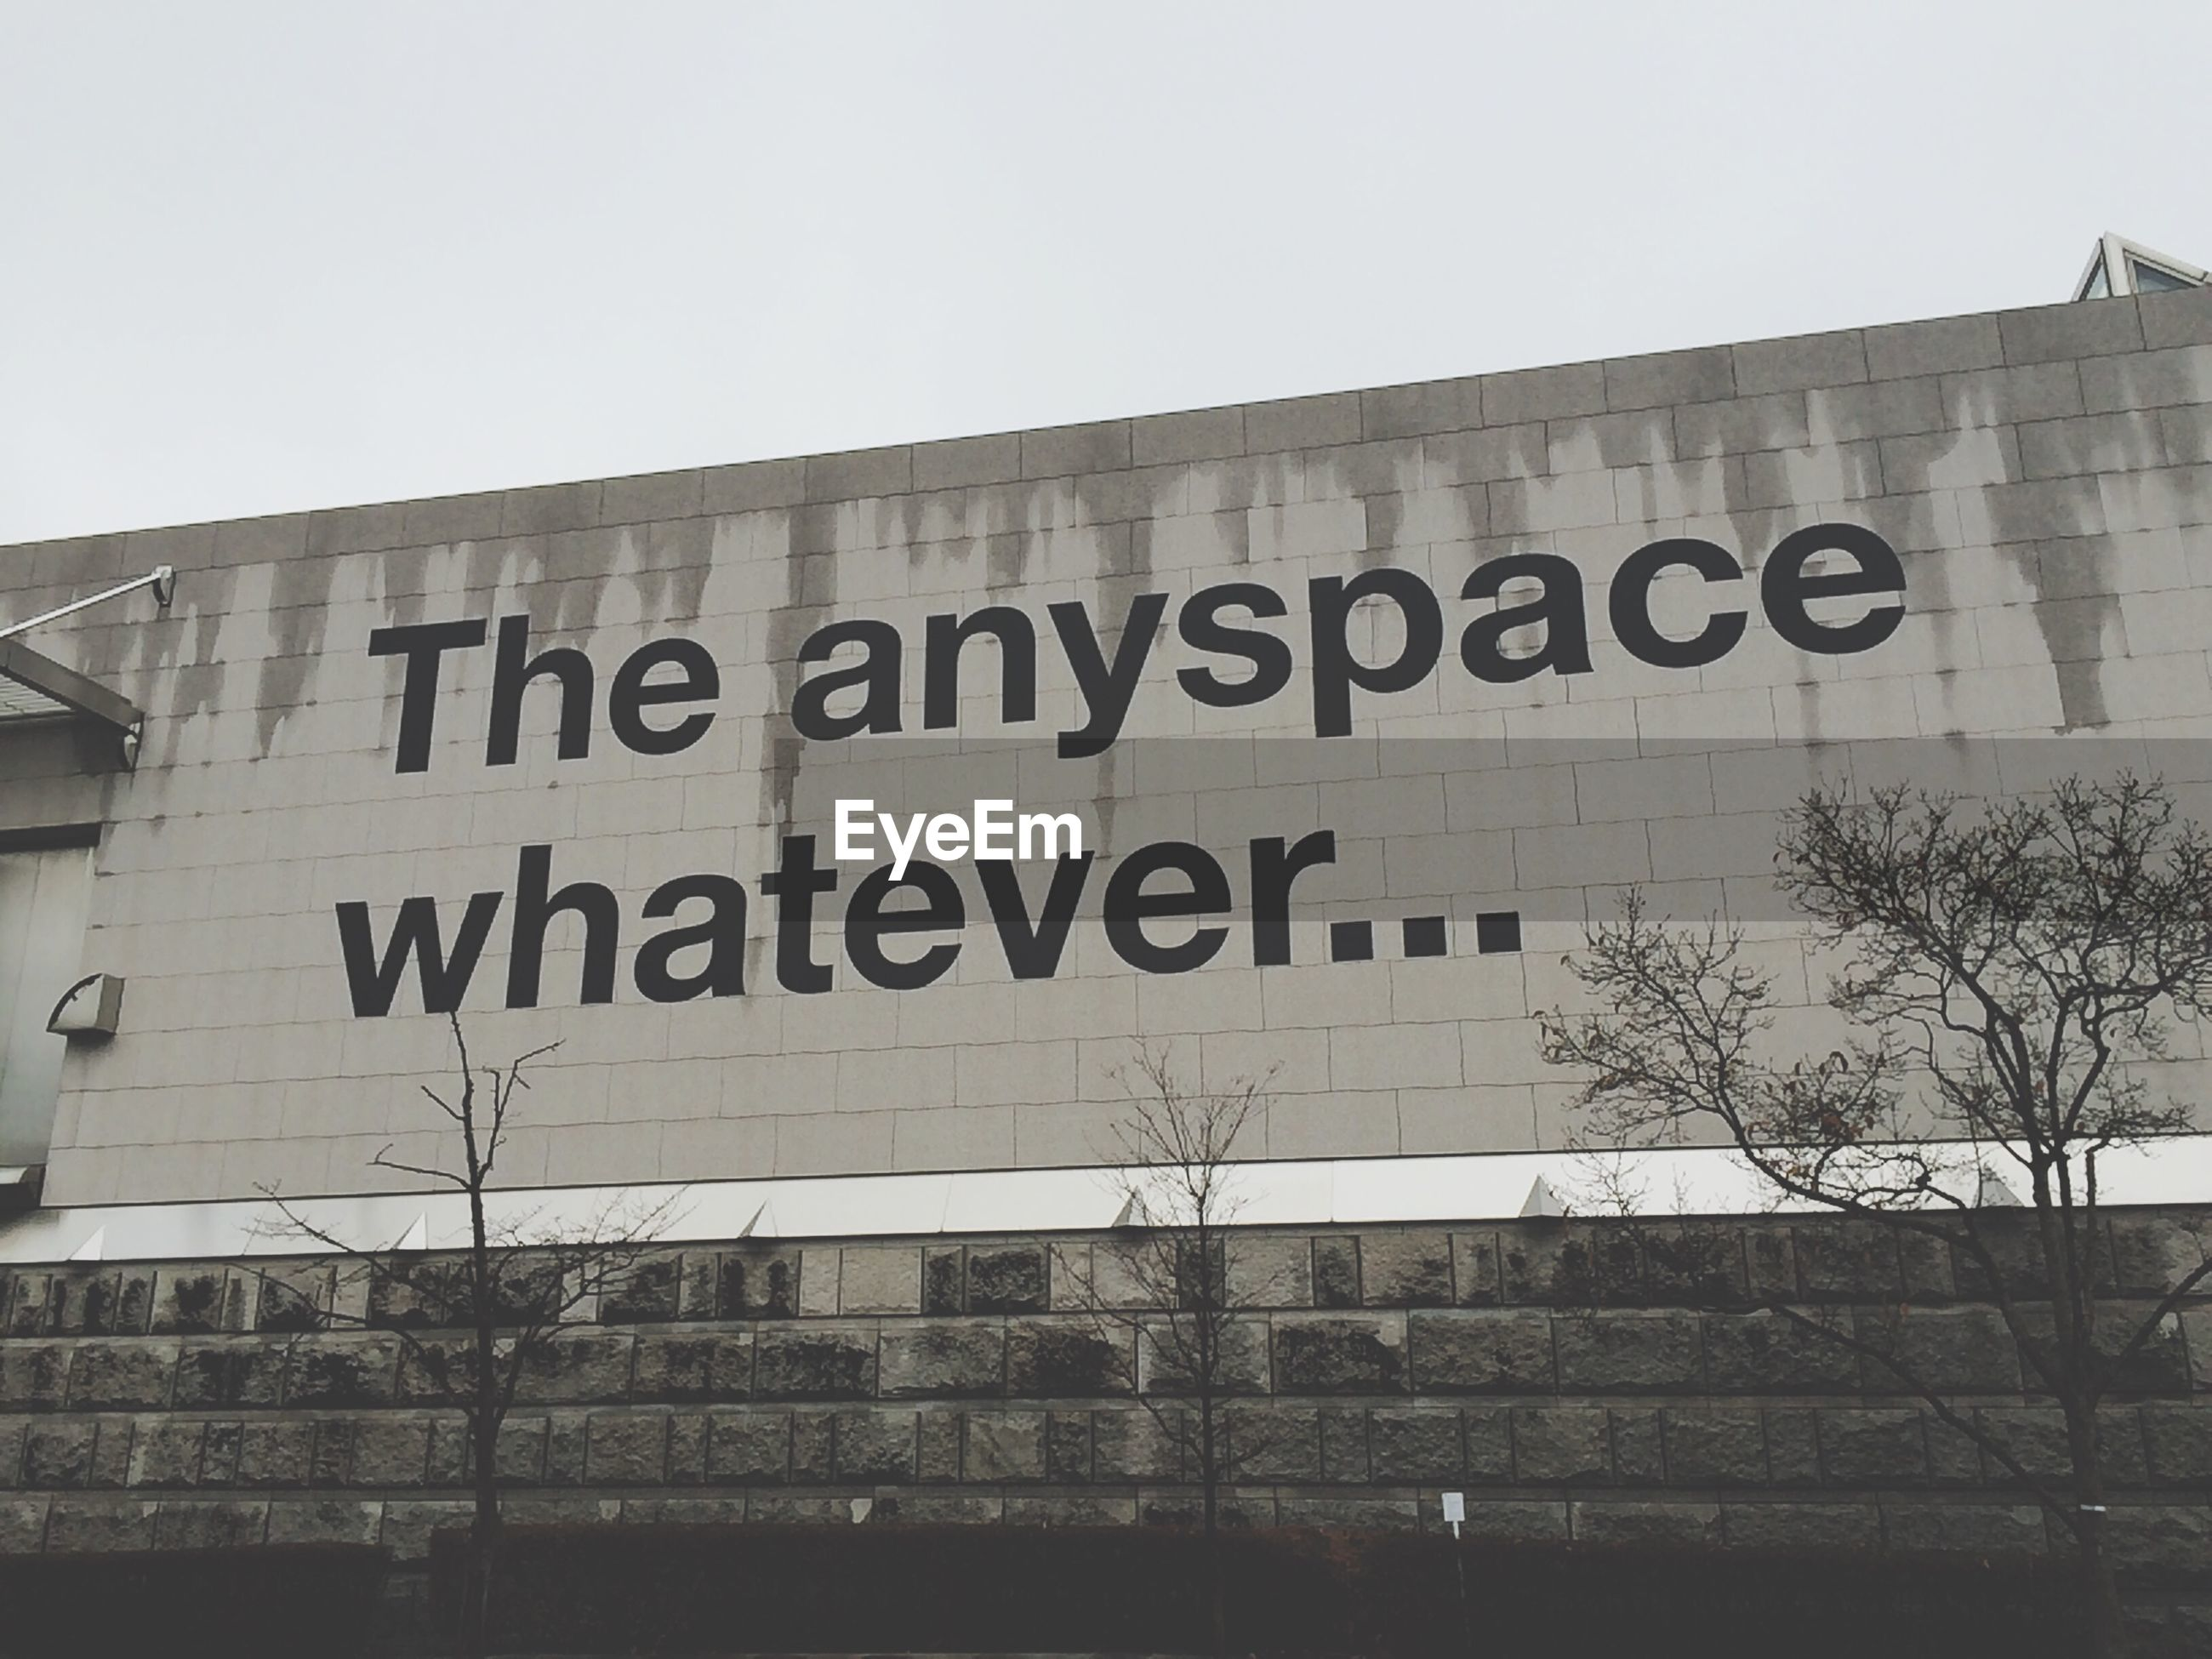 architecture, built structure, building exterior, text, western script, clear sky, low angle view, communication, graffiti, building, city, non-western script, capital letter, wall - building feature, day, outdoors, information, information sign, sky, sign